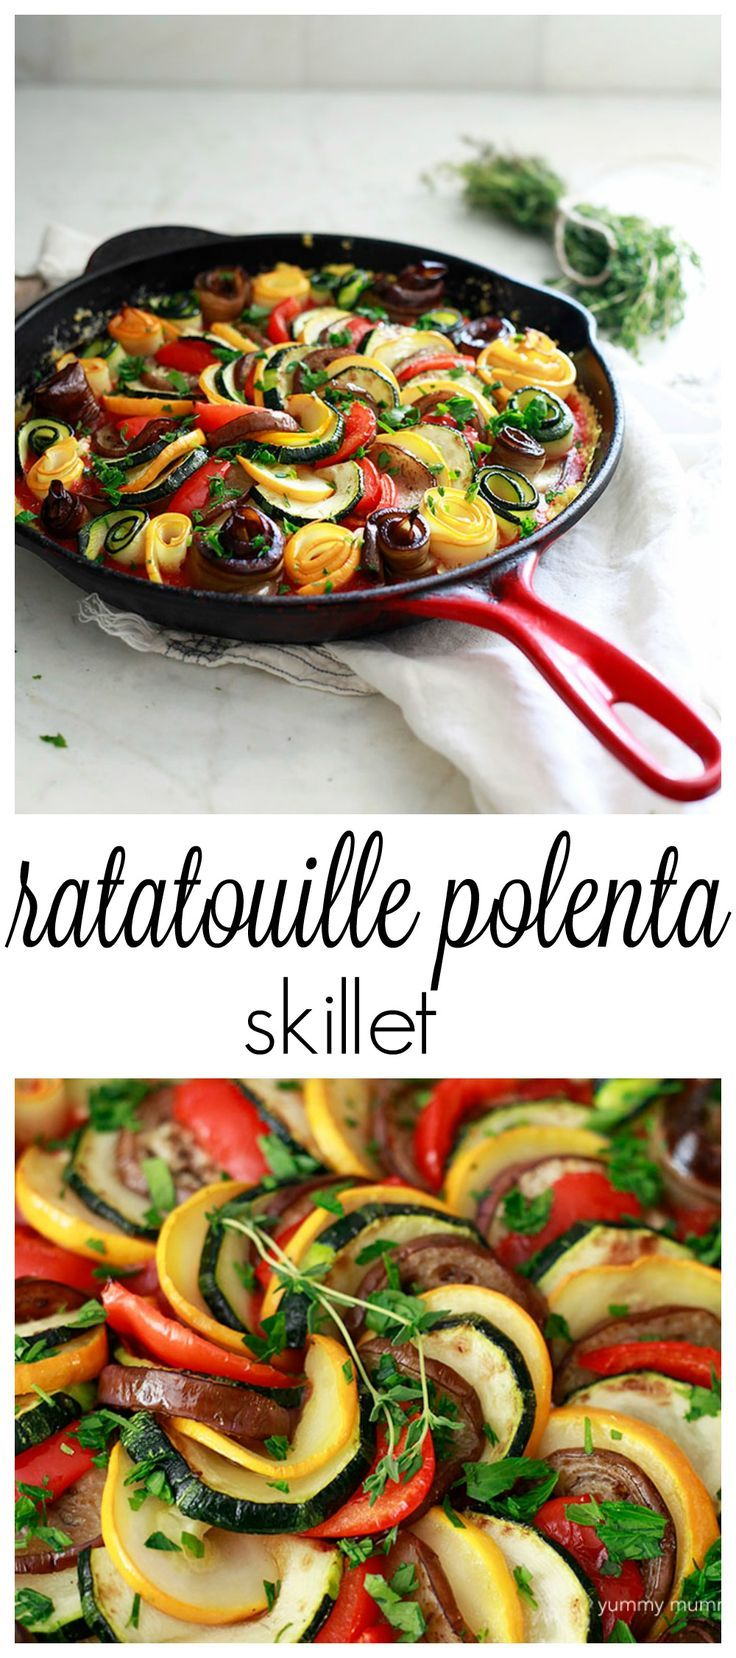 I love this layered ratatouille over polenta for a comforting but healthy vegetarian/vegan meal. Perfect for using summer squash, eggplant, and peppers.